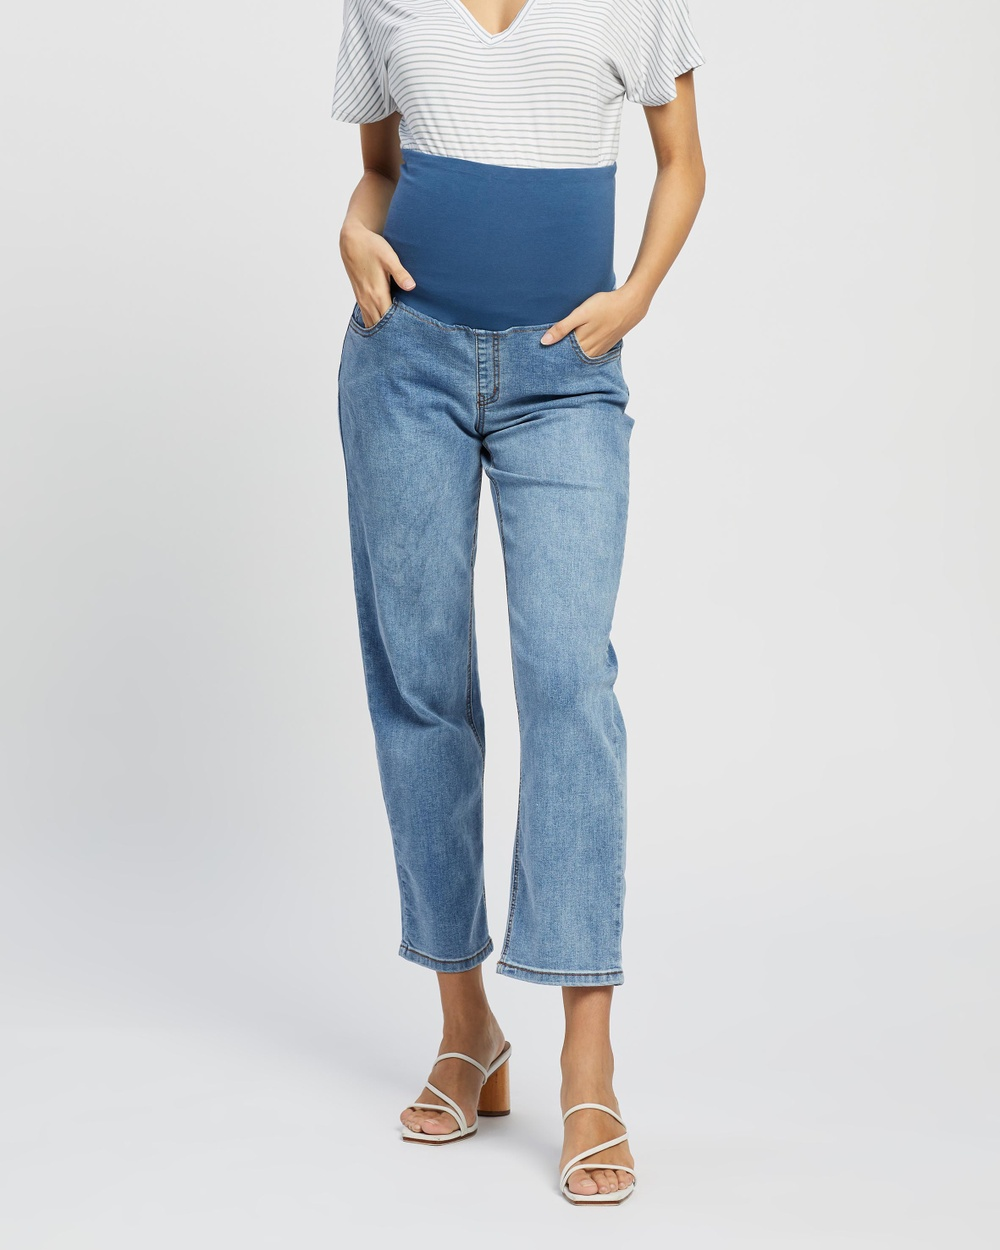 Cotton On Maternity Over Belly Straight Stretch Jeans The Iconic Exclusive High-Waisted Brunswick Blue Australia